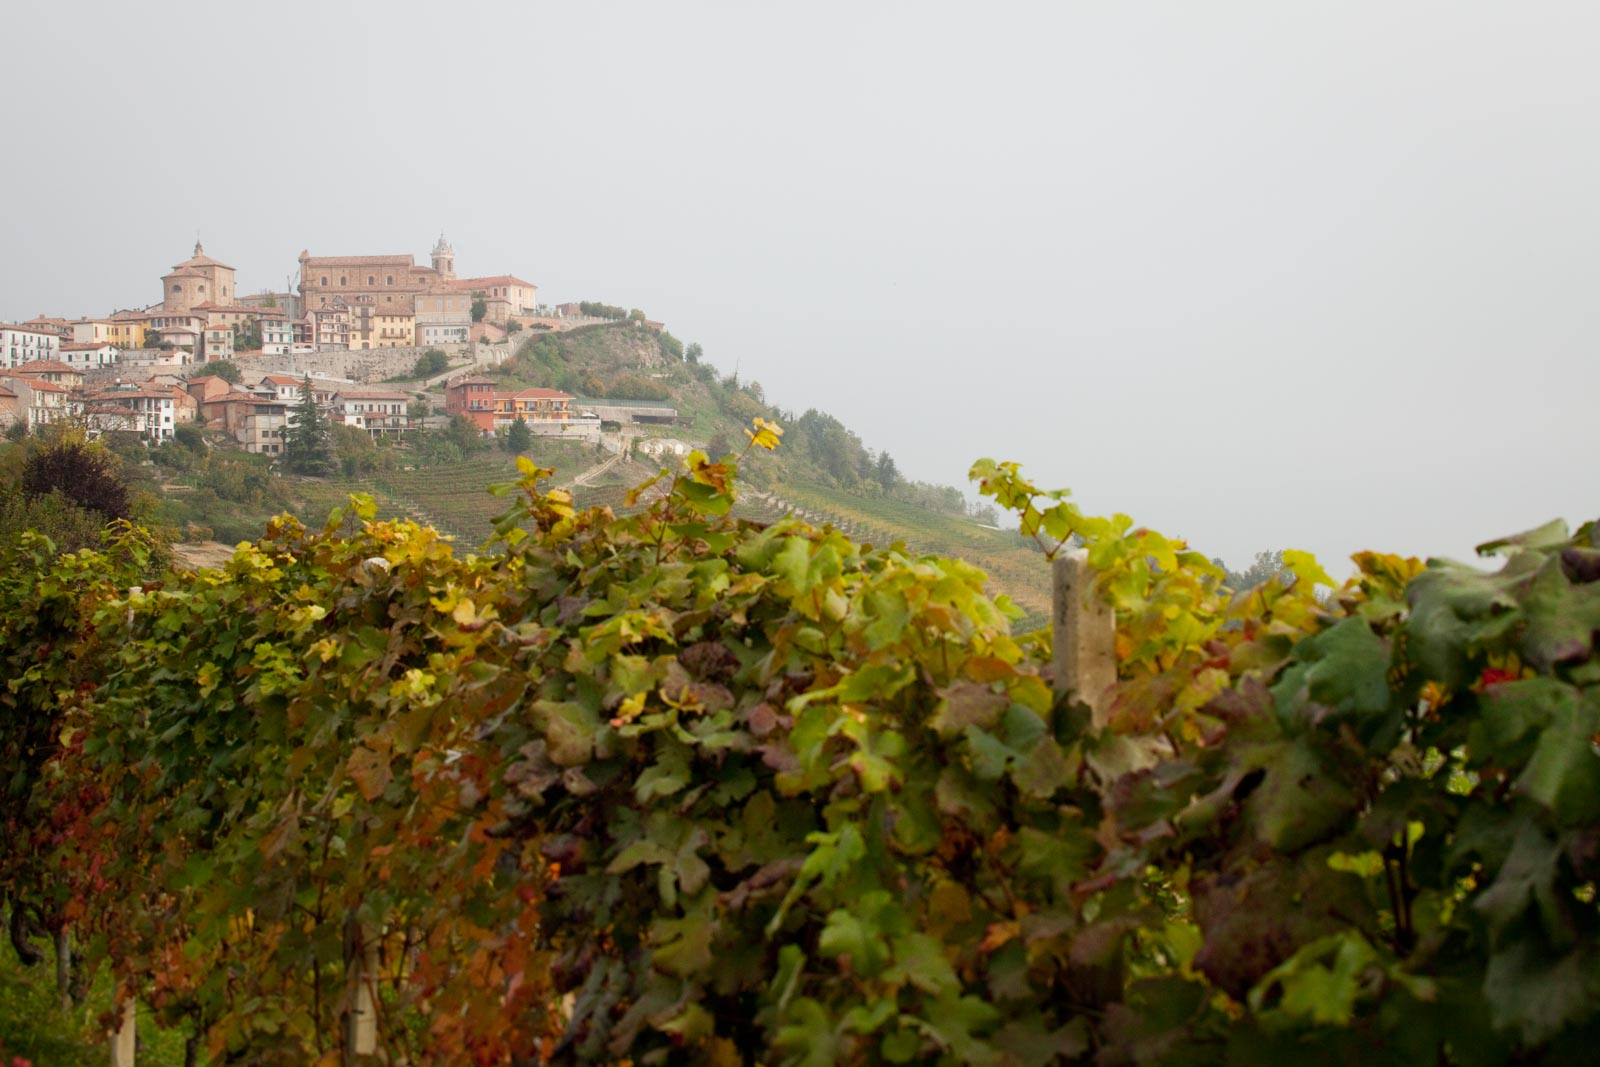 The hilltop village of La Morra, where winemaker Michele Reverdito is based. ©Kevin Day/Opening a Bottle